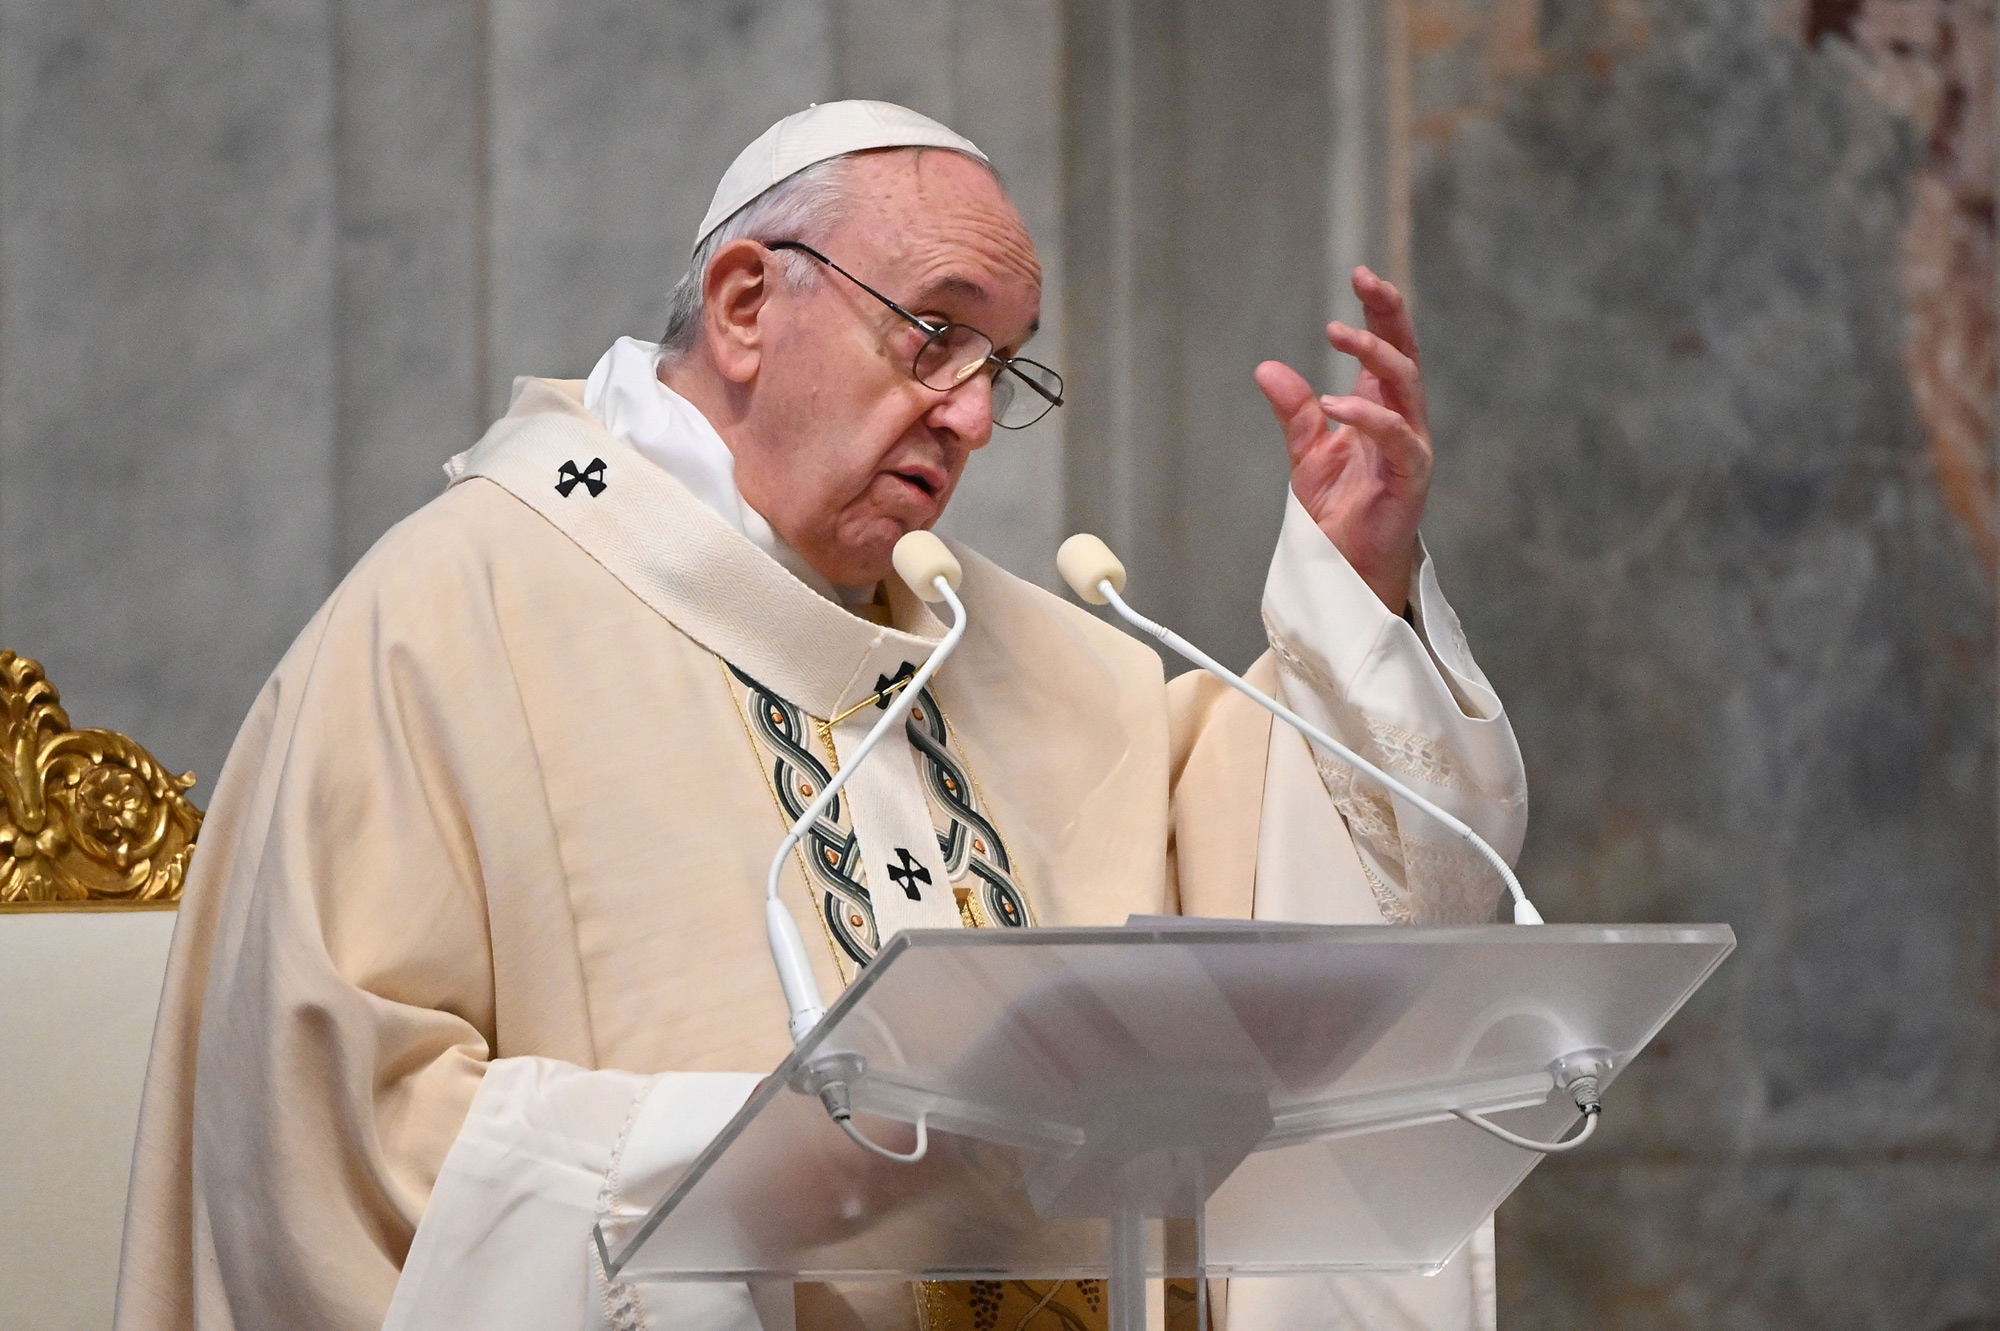 Pope Francis delivers his homily during a Holy Mass on November 22 at St. Peter's Basilica in The Vatican.